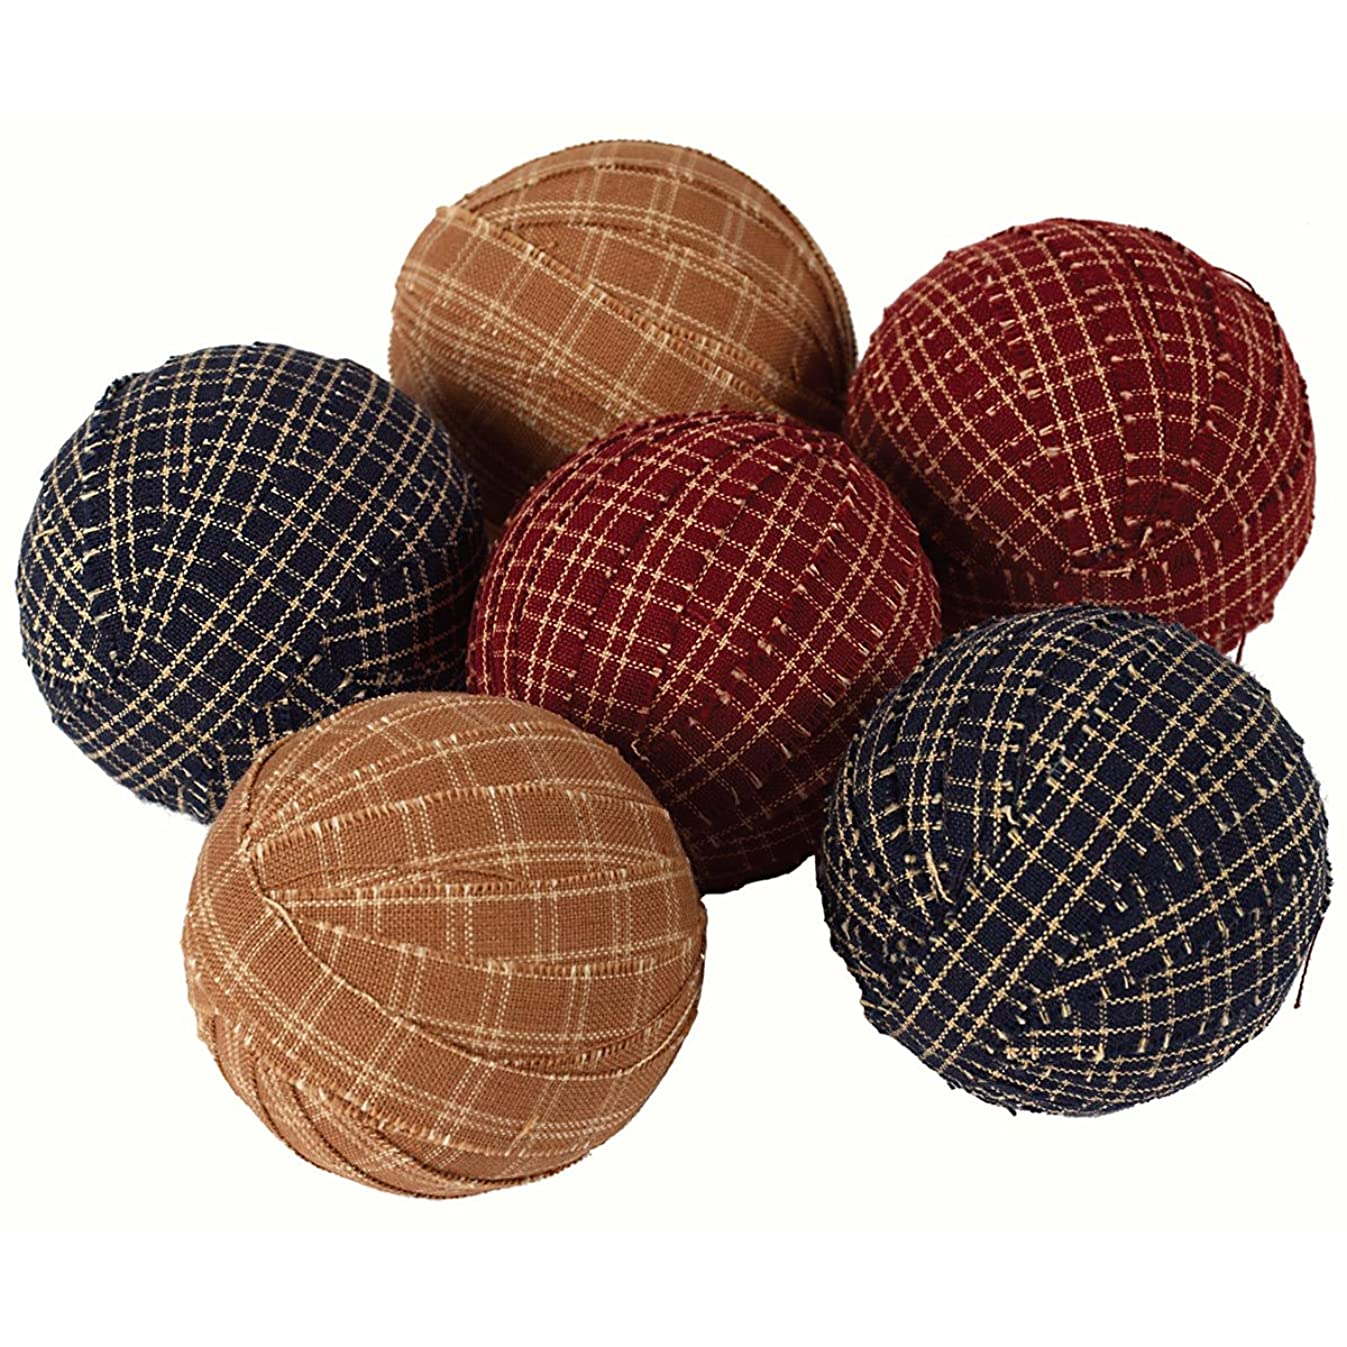 Large Primitive Rag Balls Set